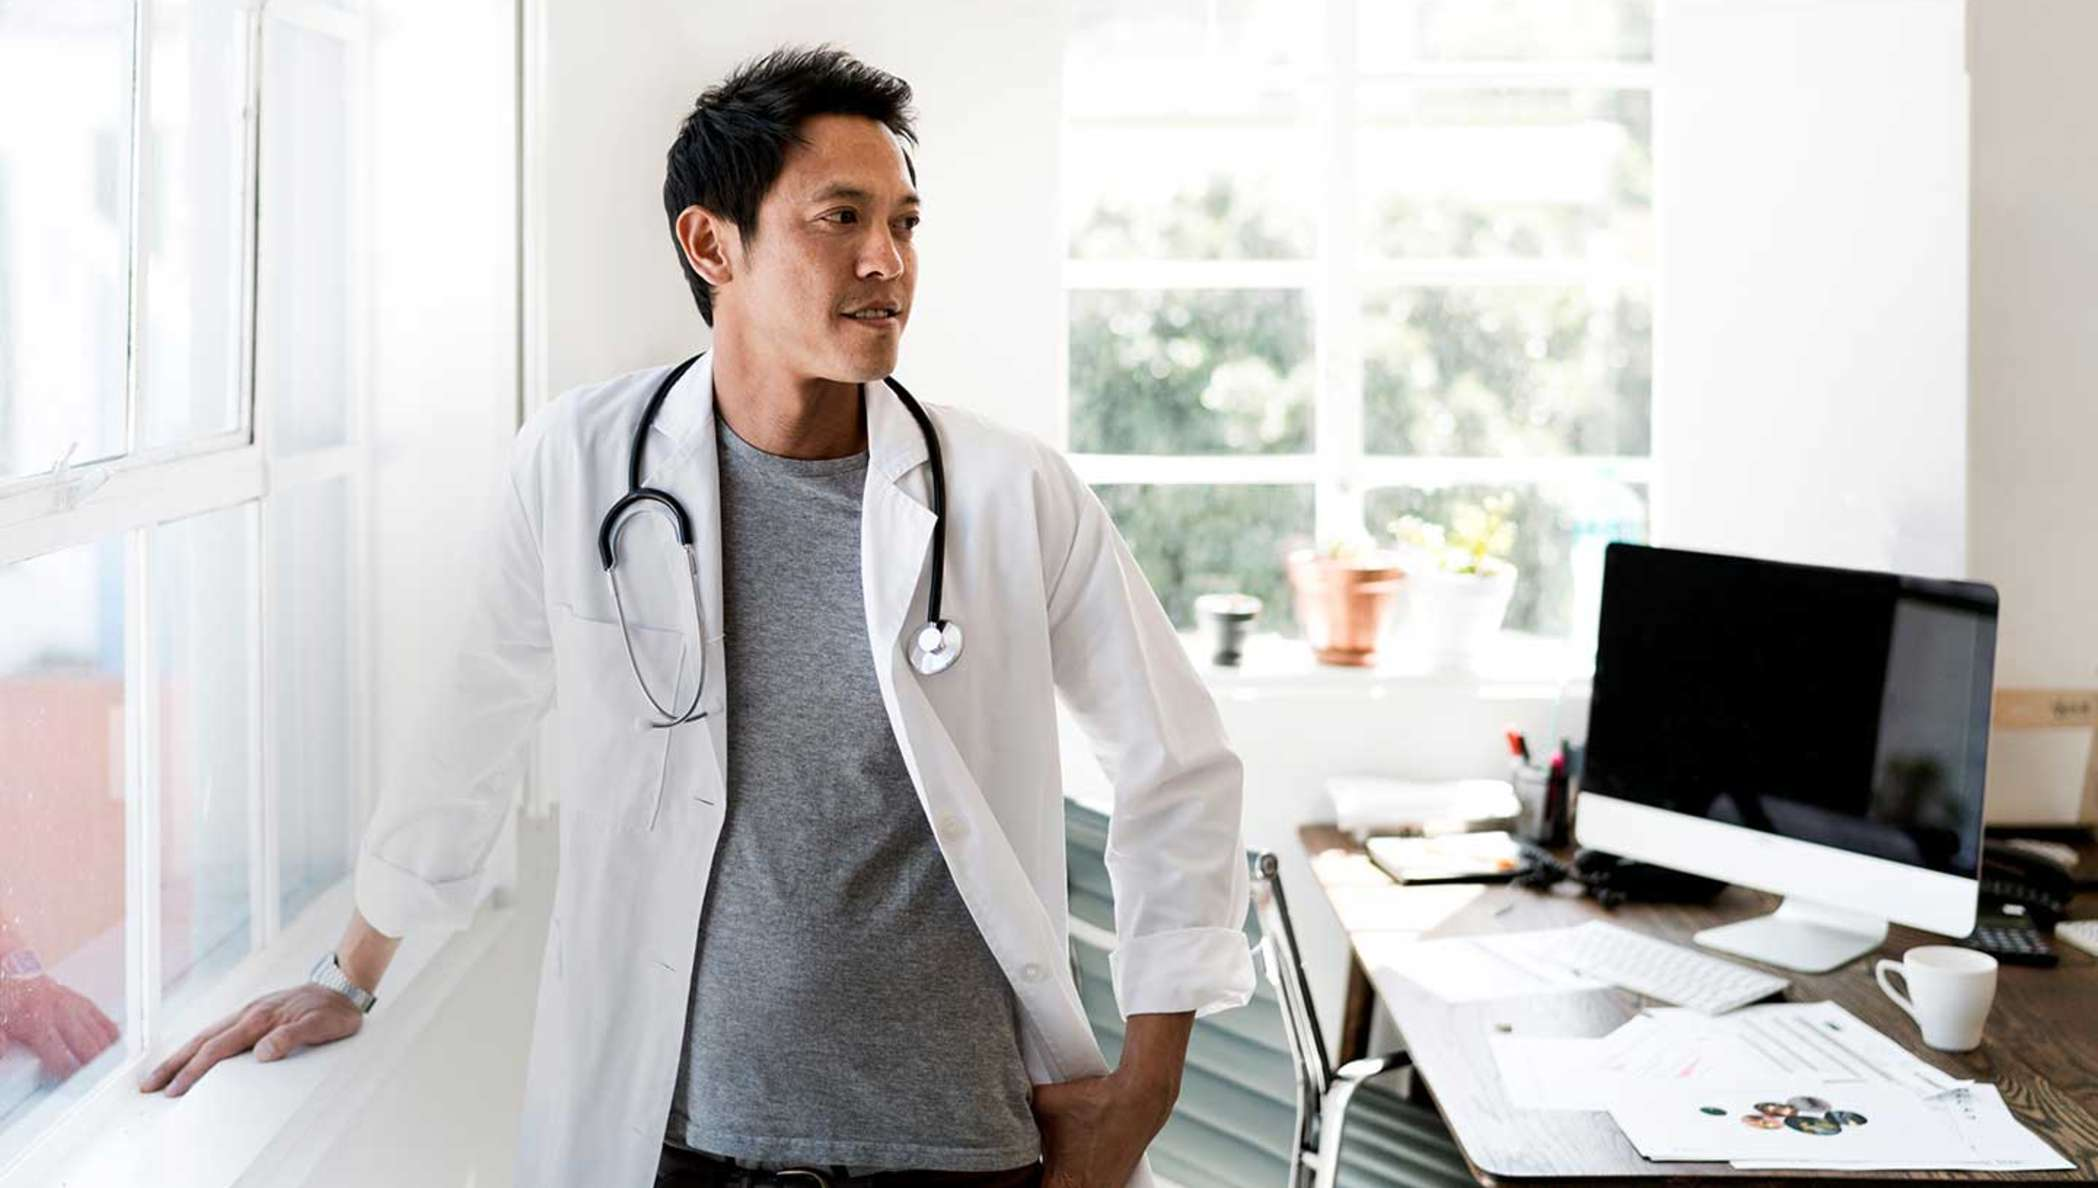 Doctor next to an office window, looking past his desk.